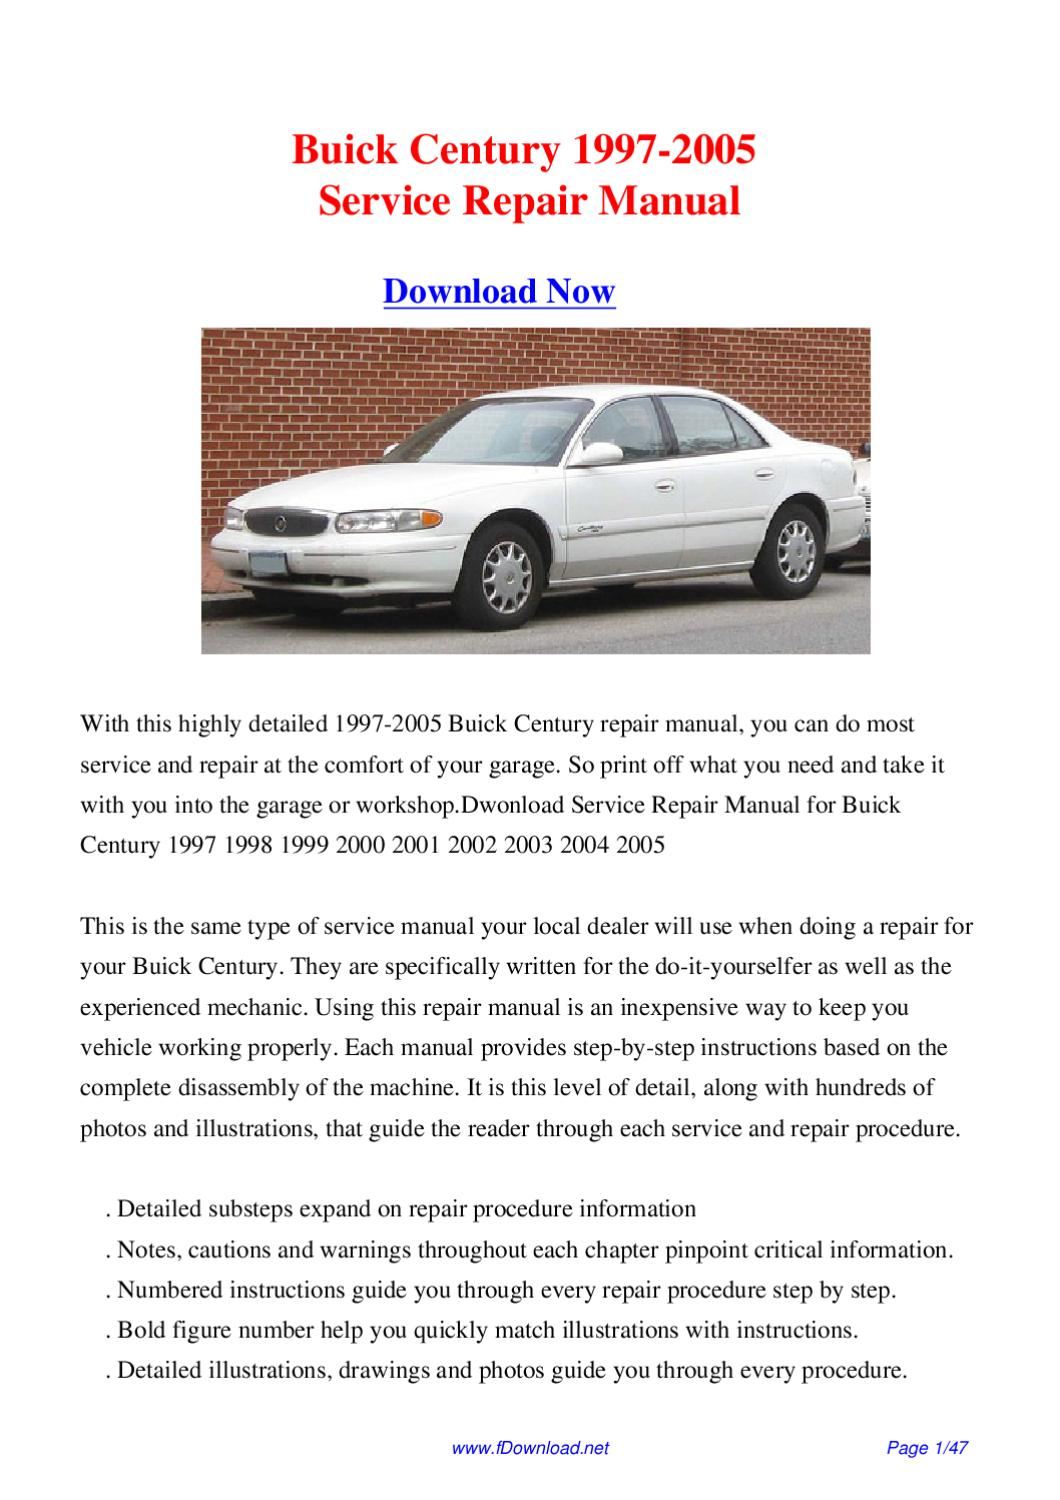 2000 buick century owners manual trusted wiring diagrams u2022 rh weneedradio org 2002 Buick Regal GS Supercharged 2002 Buick Regal GS Supercharged